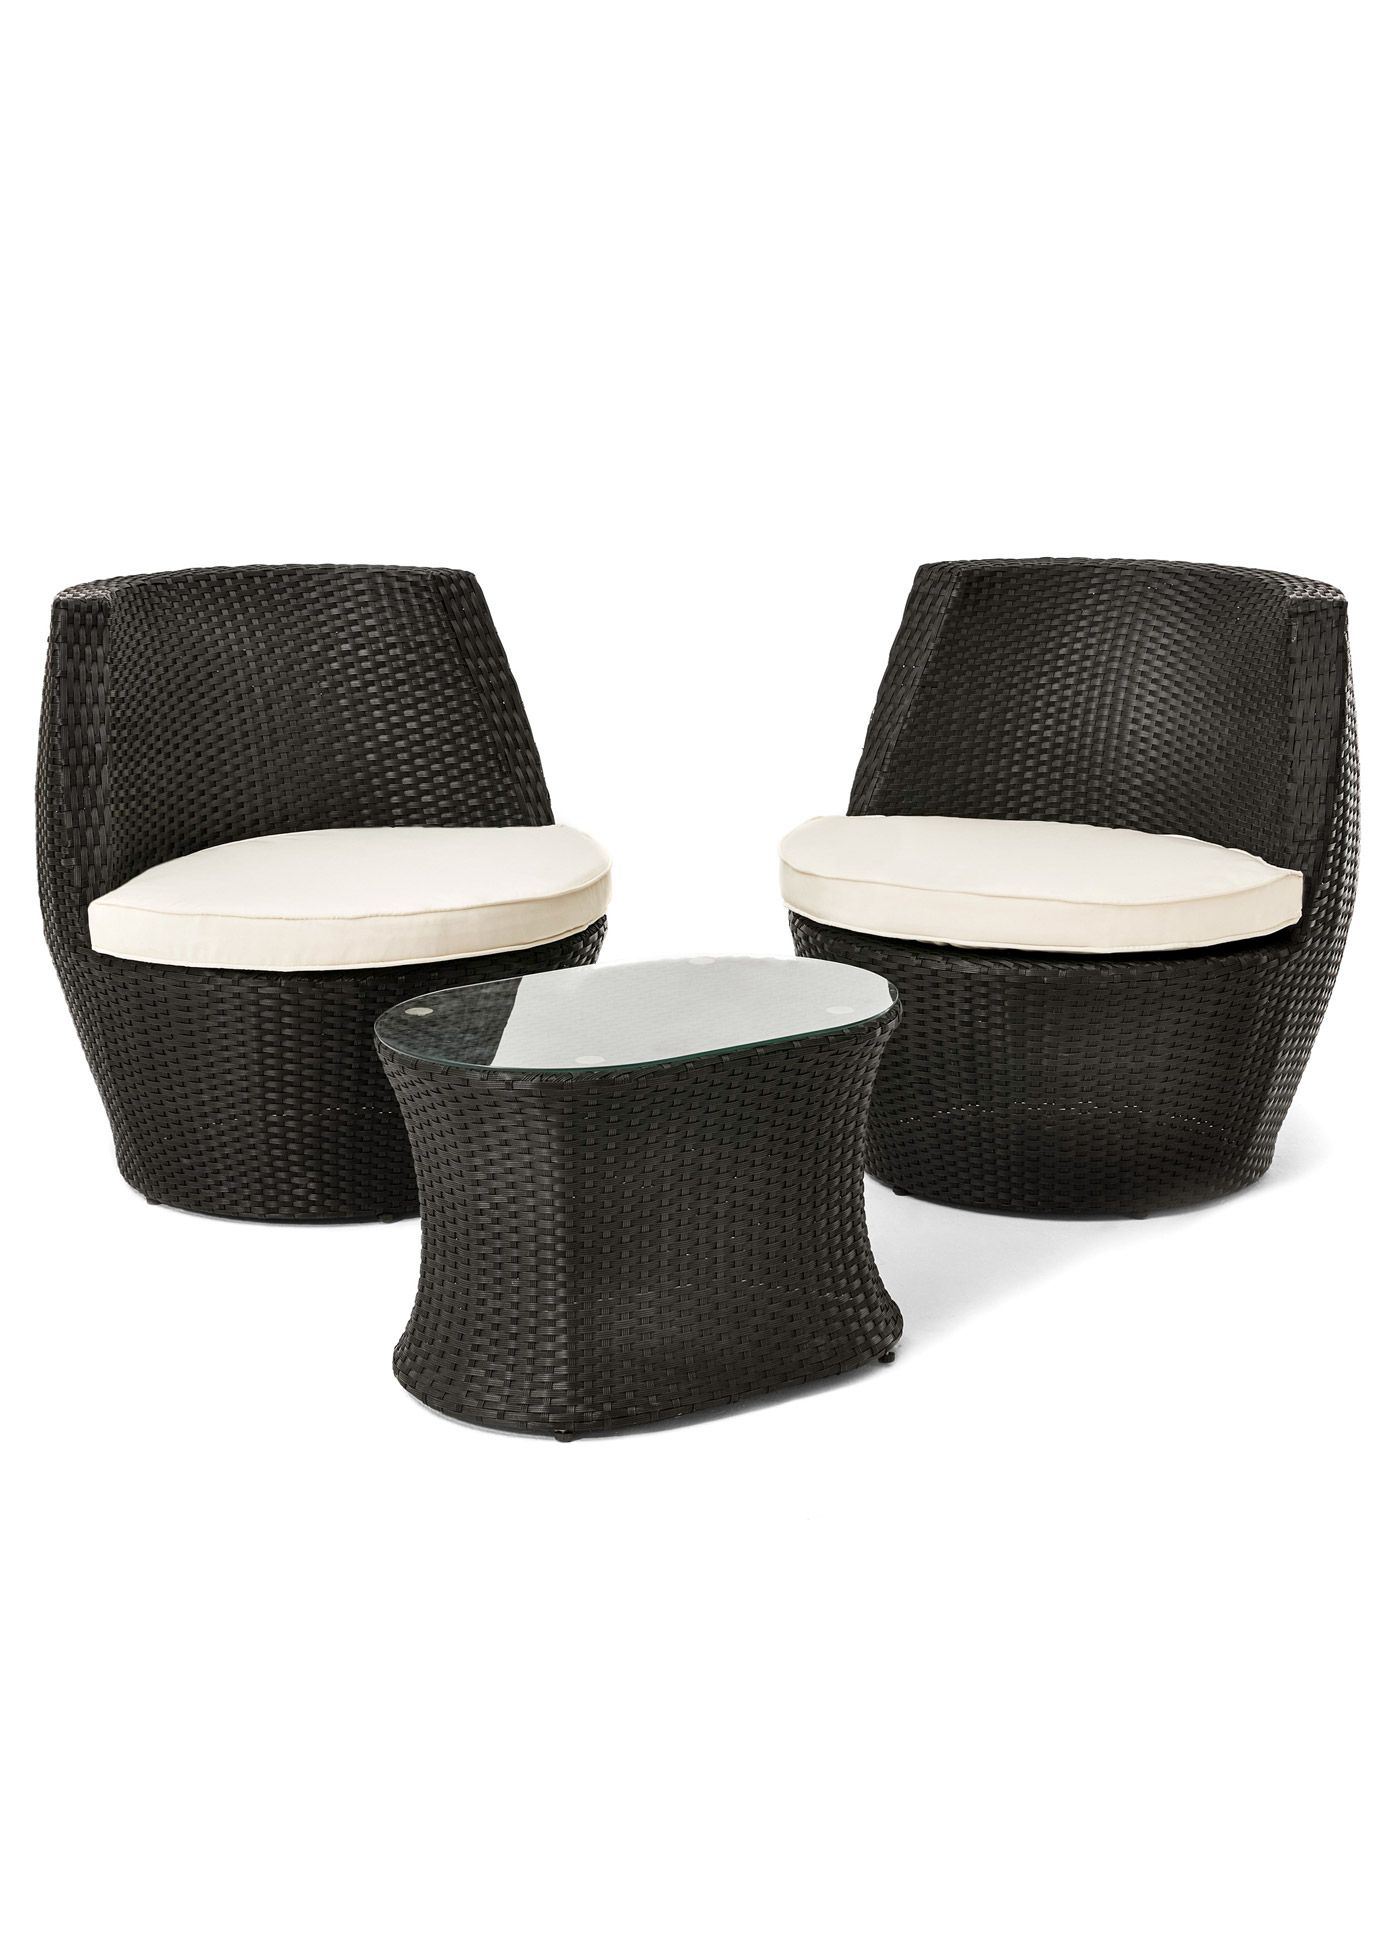 Balkonmoebel Set Rattan Balkonmöbel Set Grace 3tlg In 2019 Products Balkonmöbel Set